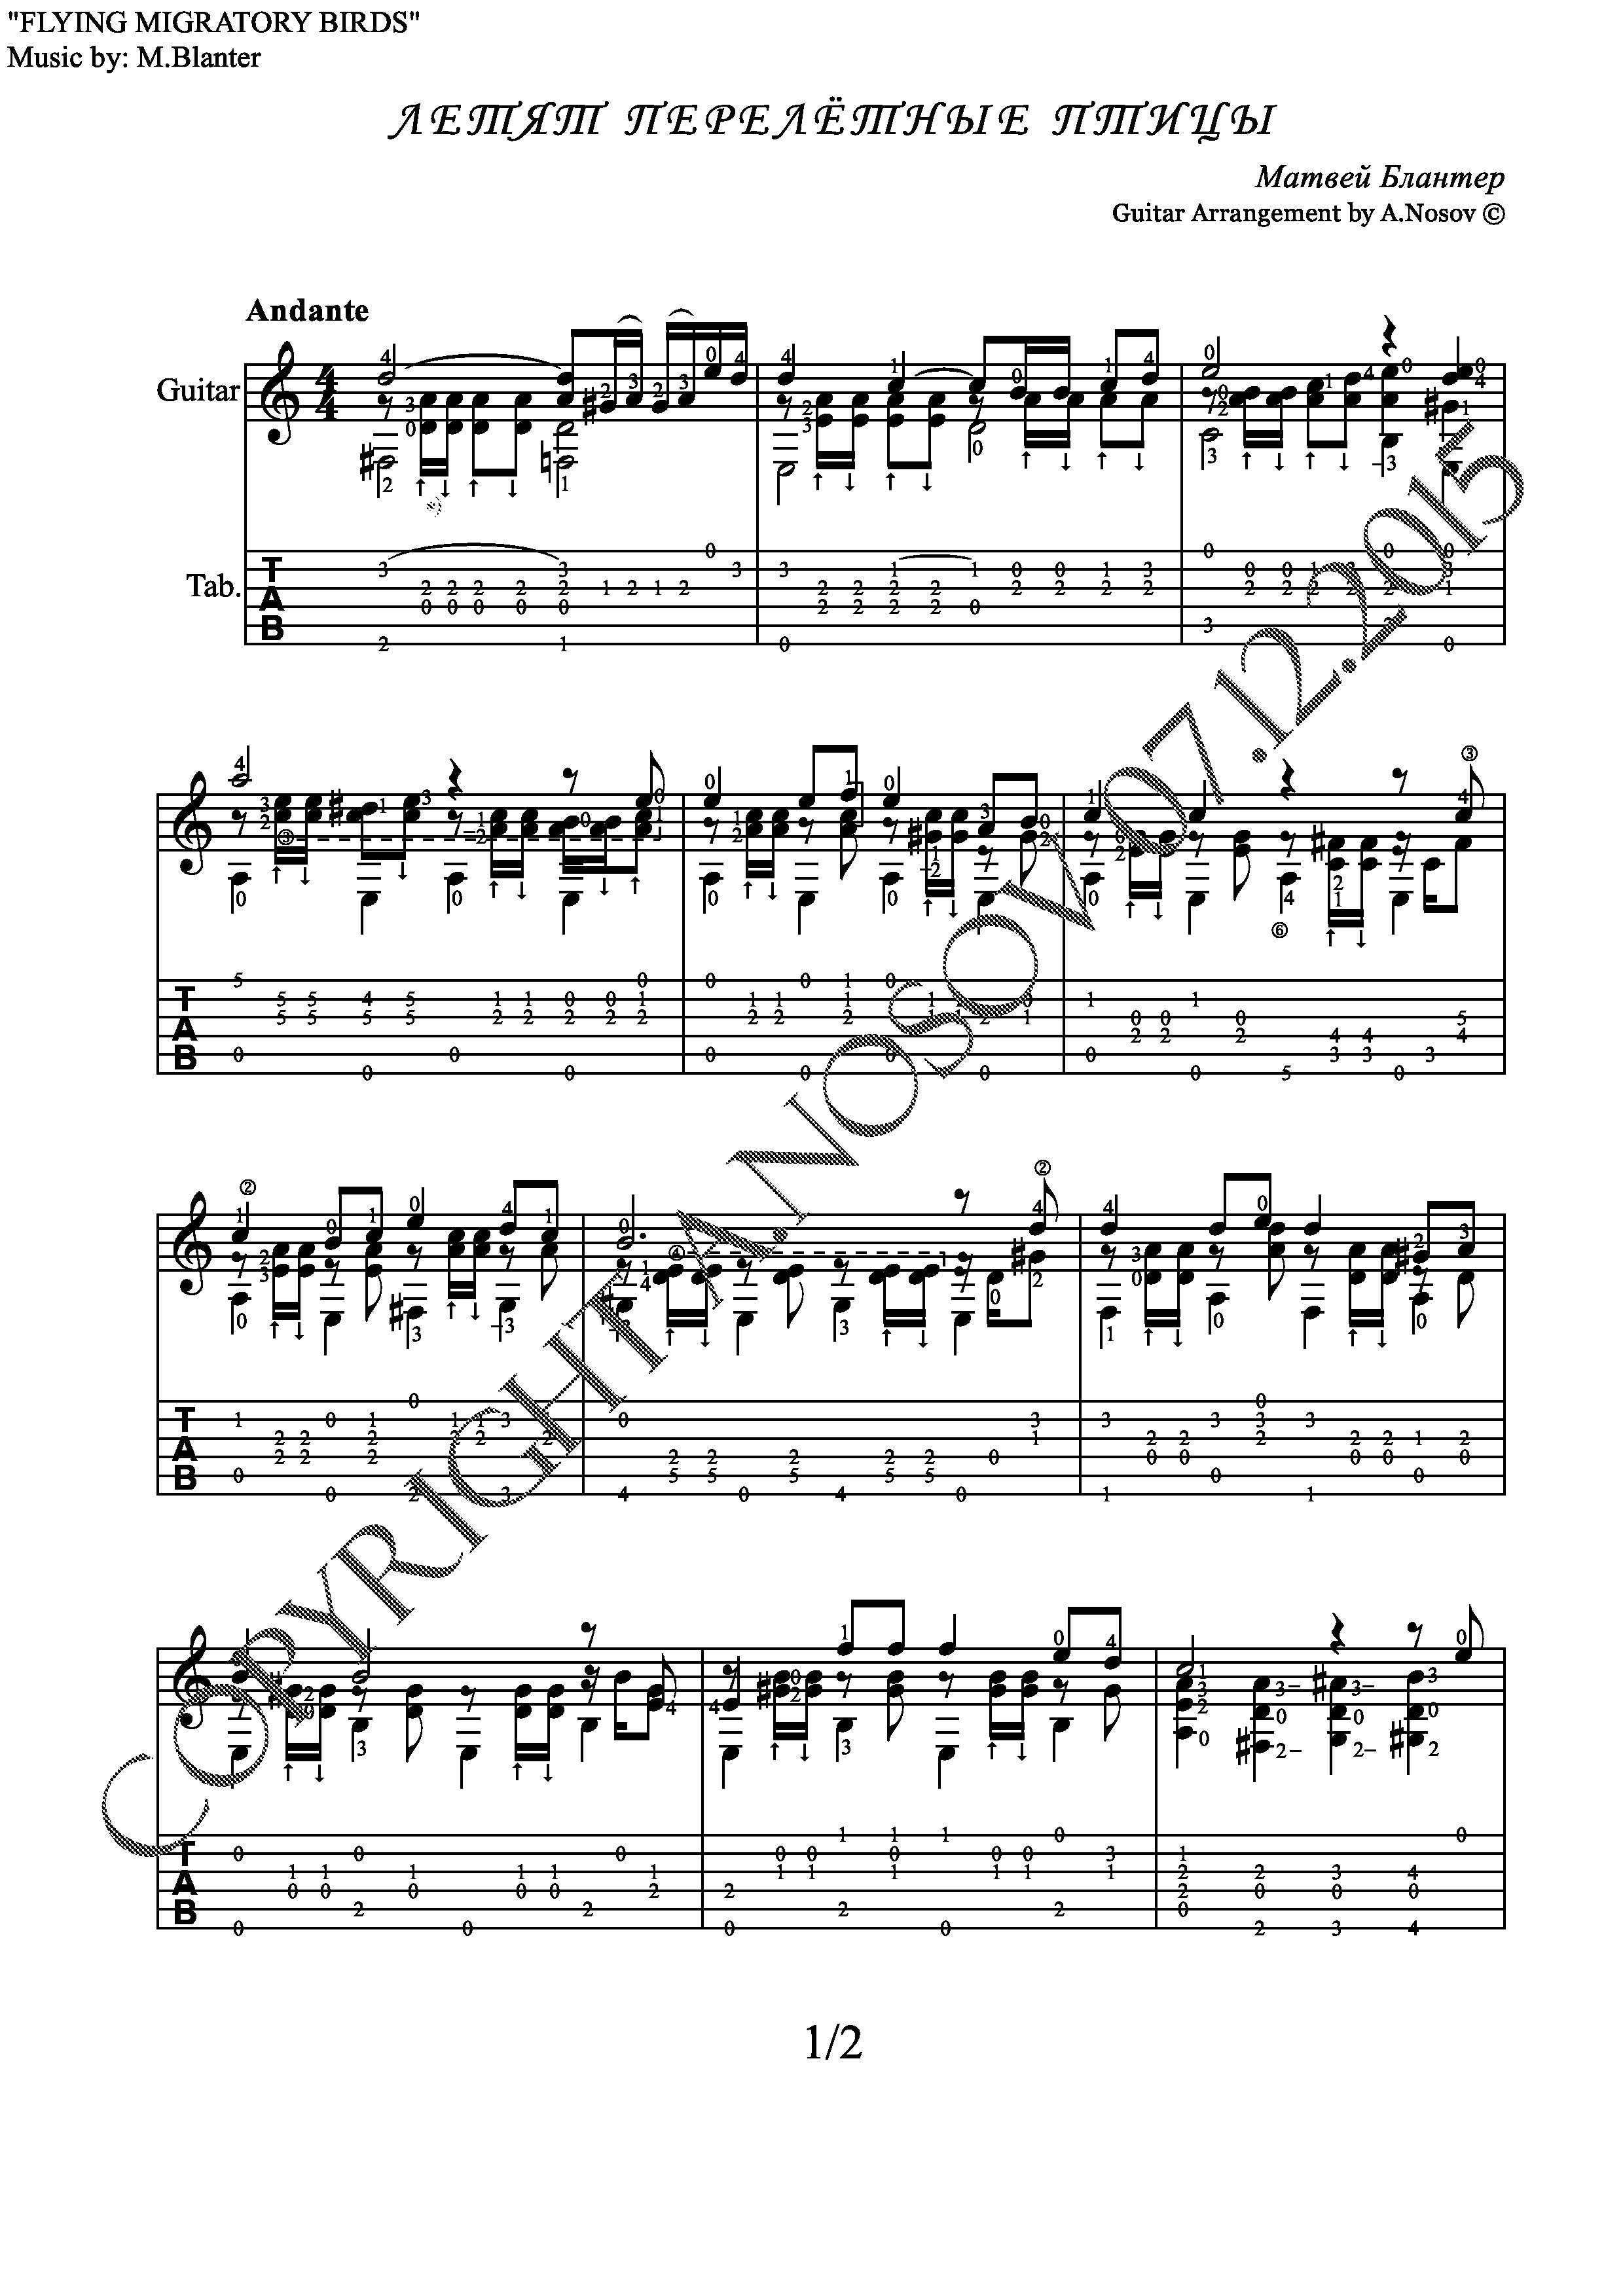 Flying Migratory Birds (Sheet music and tabs for guitar